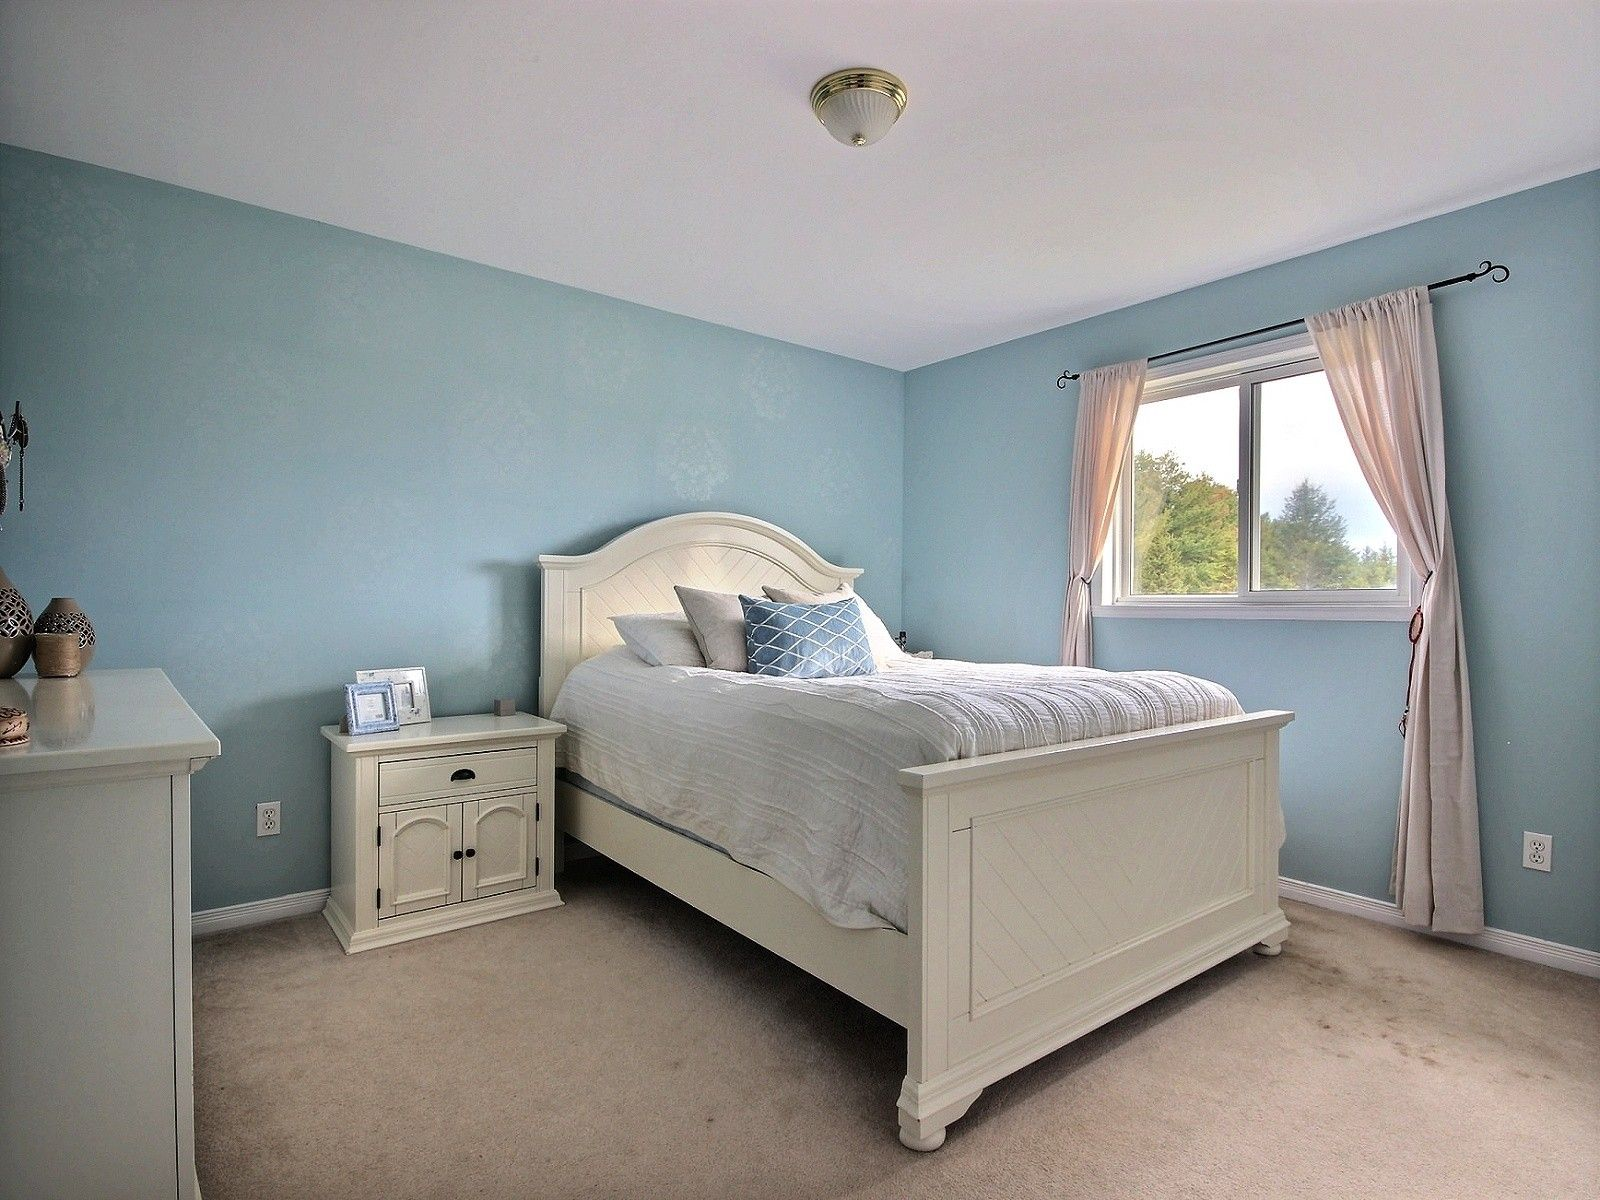 Bedroom Sets For Sale Perth 28 Images House For Sale In Perth 953 Code Road Comfree 700368